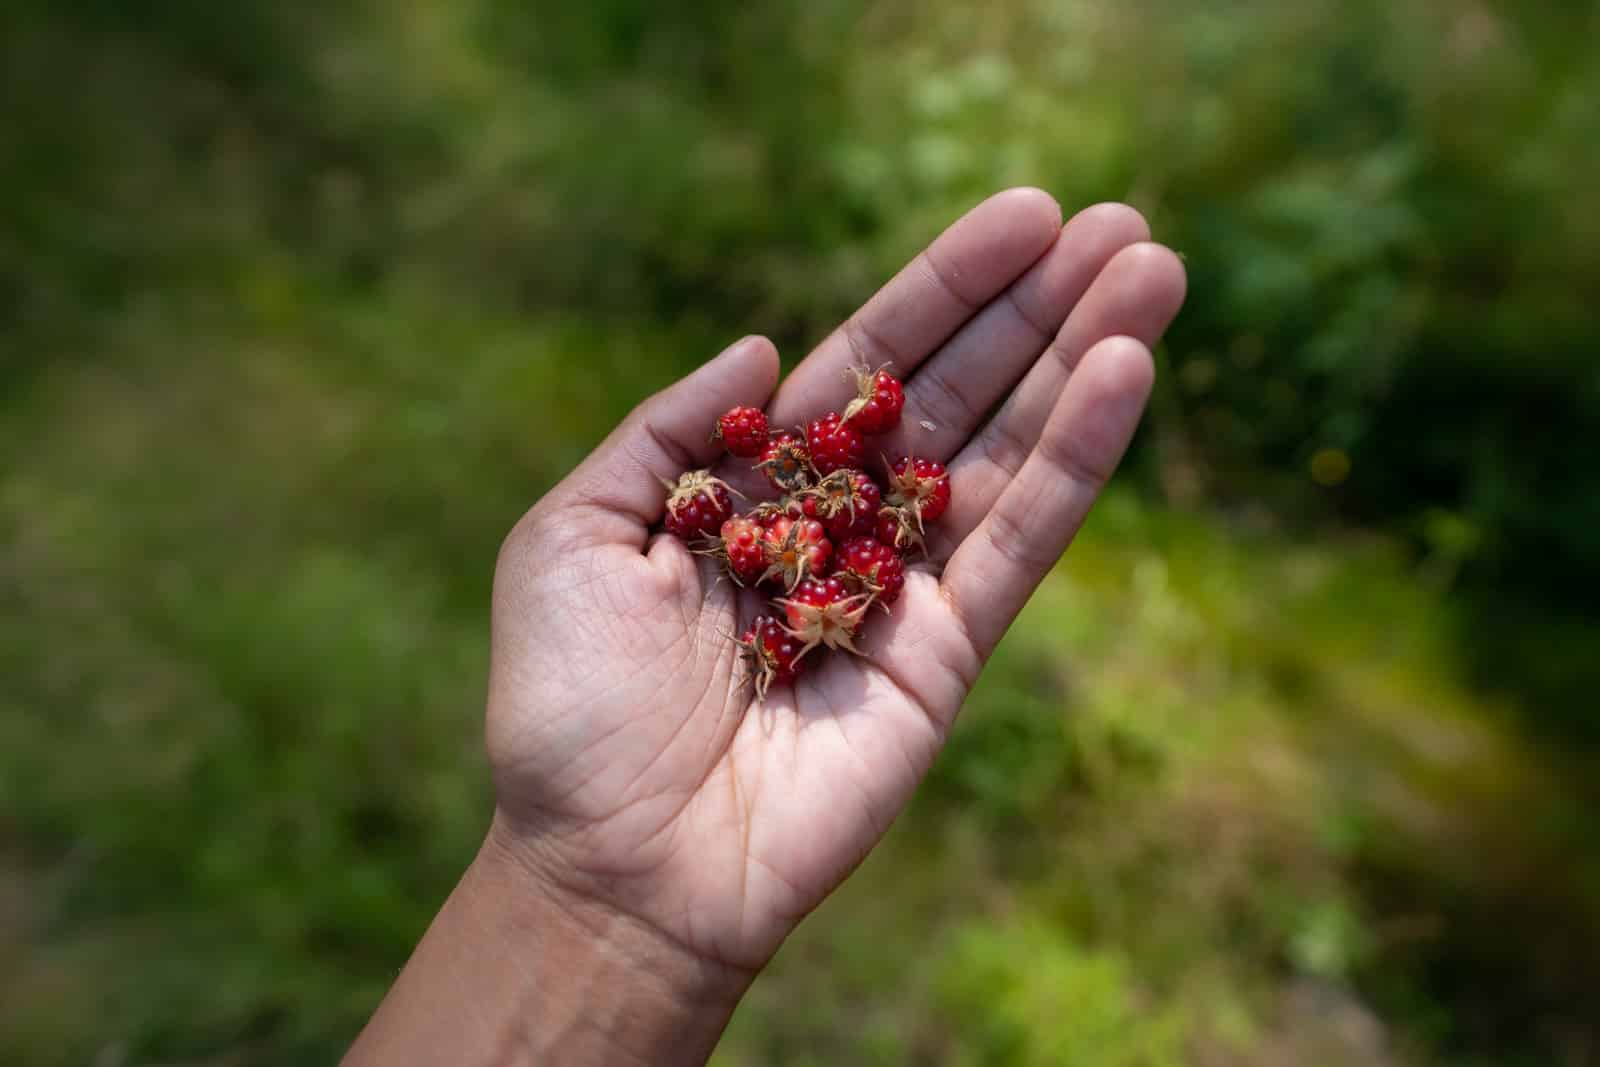 Handful of wild raspberries from a forest in Siberia, Russia